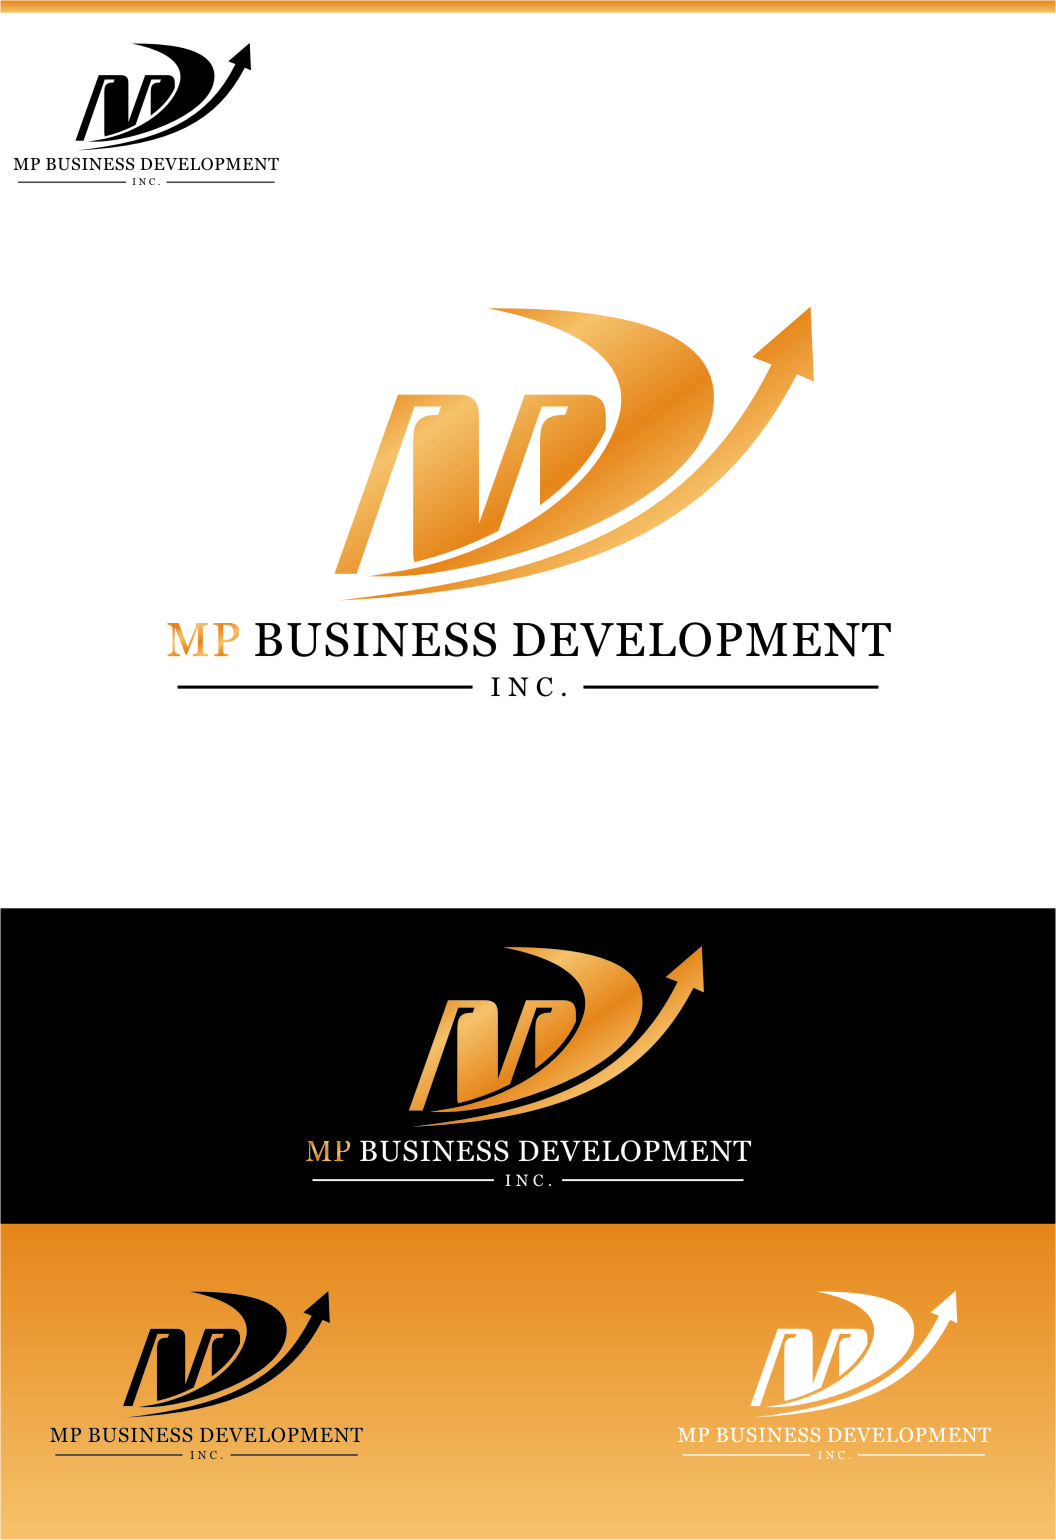 Logo Design by RoSyid Rono-Rene On Java - Entry No. 154 in the Logo Design Contest MP Business Development Inc. Logo Design.